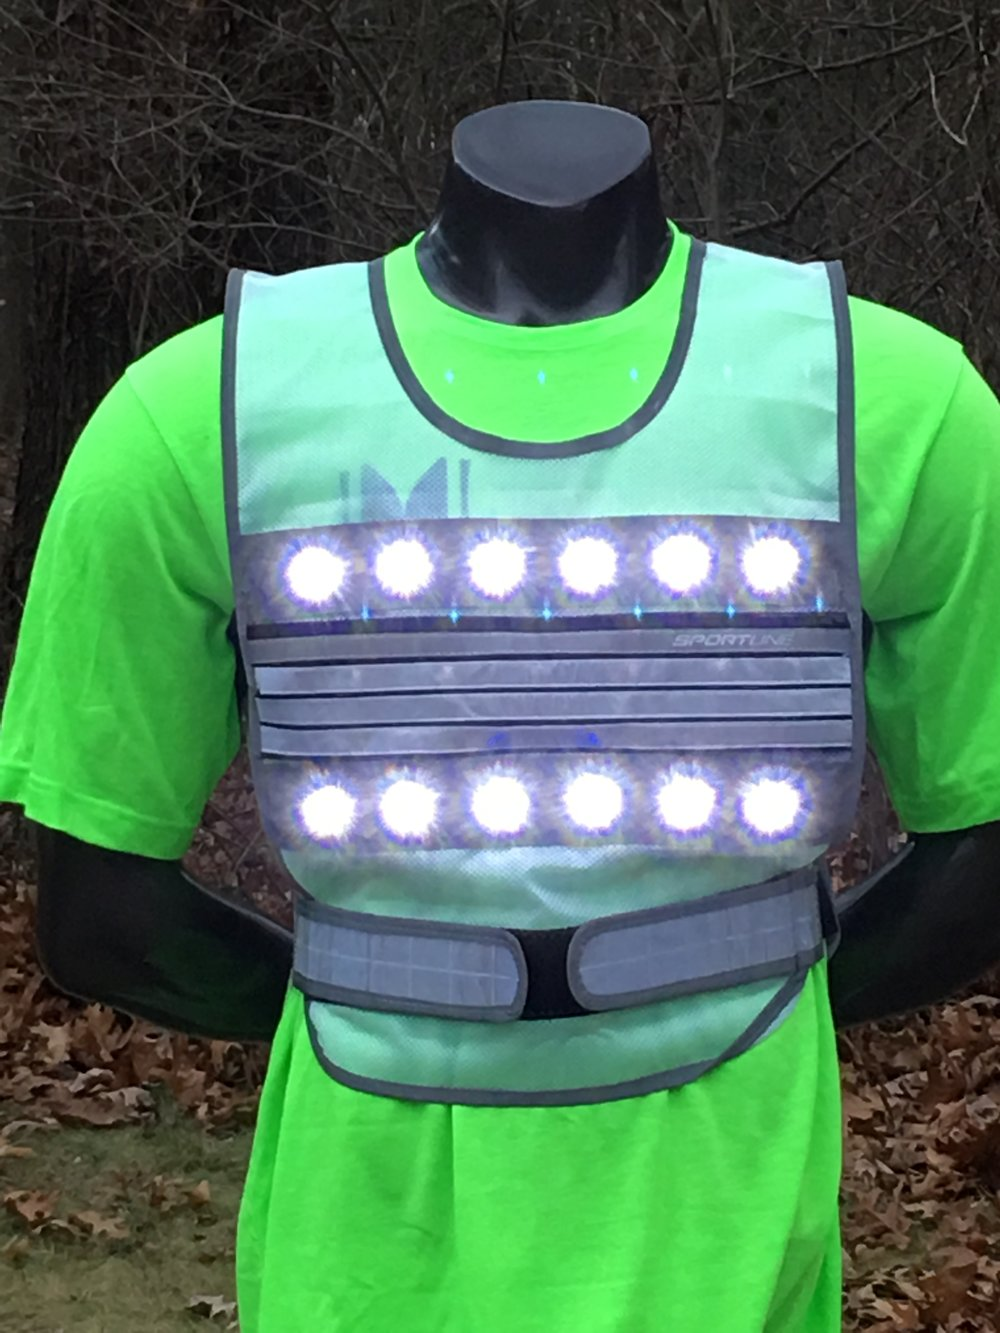 LEDLightVest-Flash-frnt-safety-vest-experts----Grand Rapids-MI.JPG